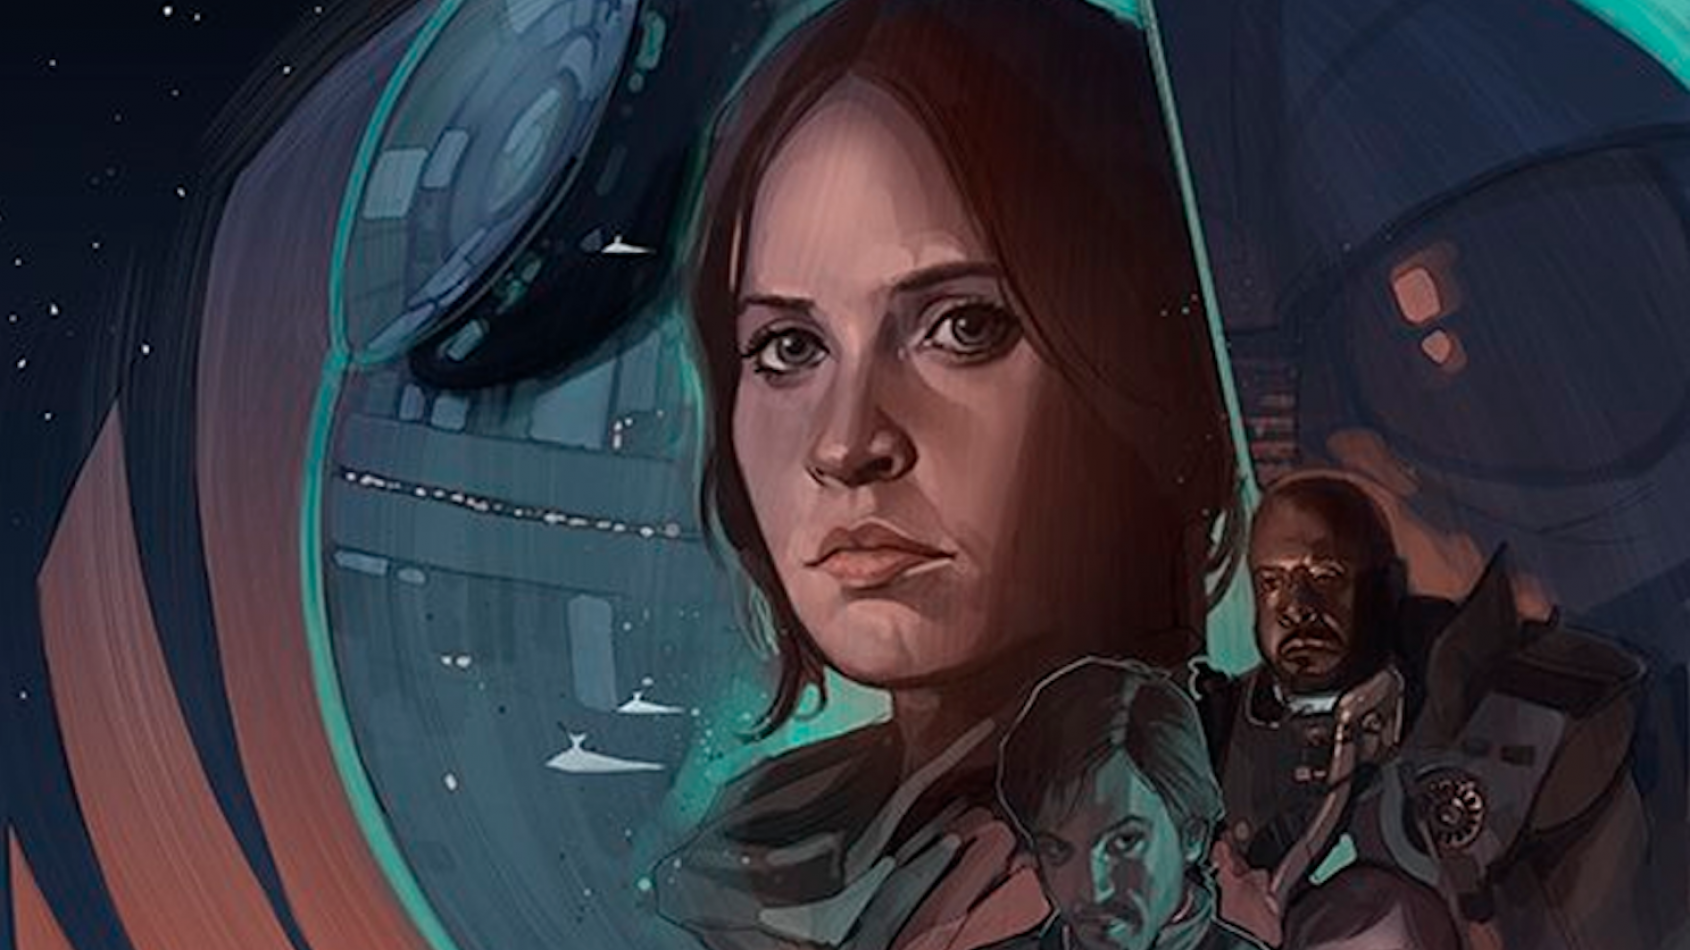 Le comic prologue de Rogue One annulé !